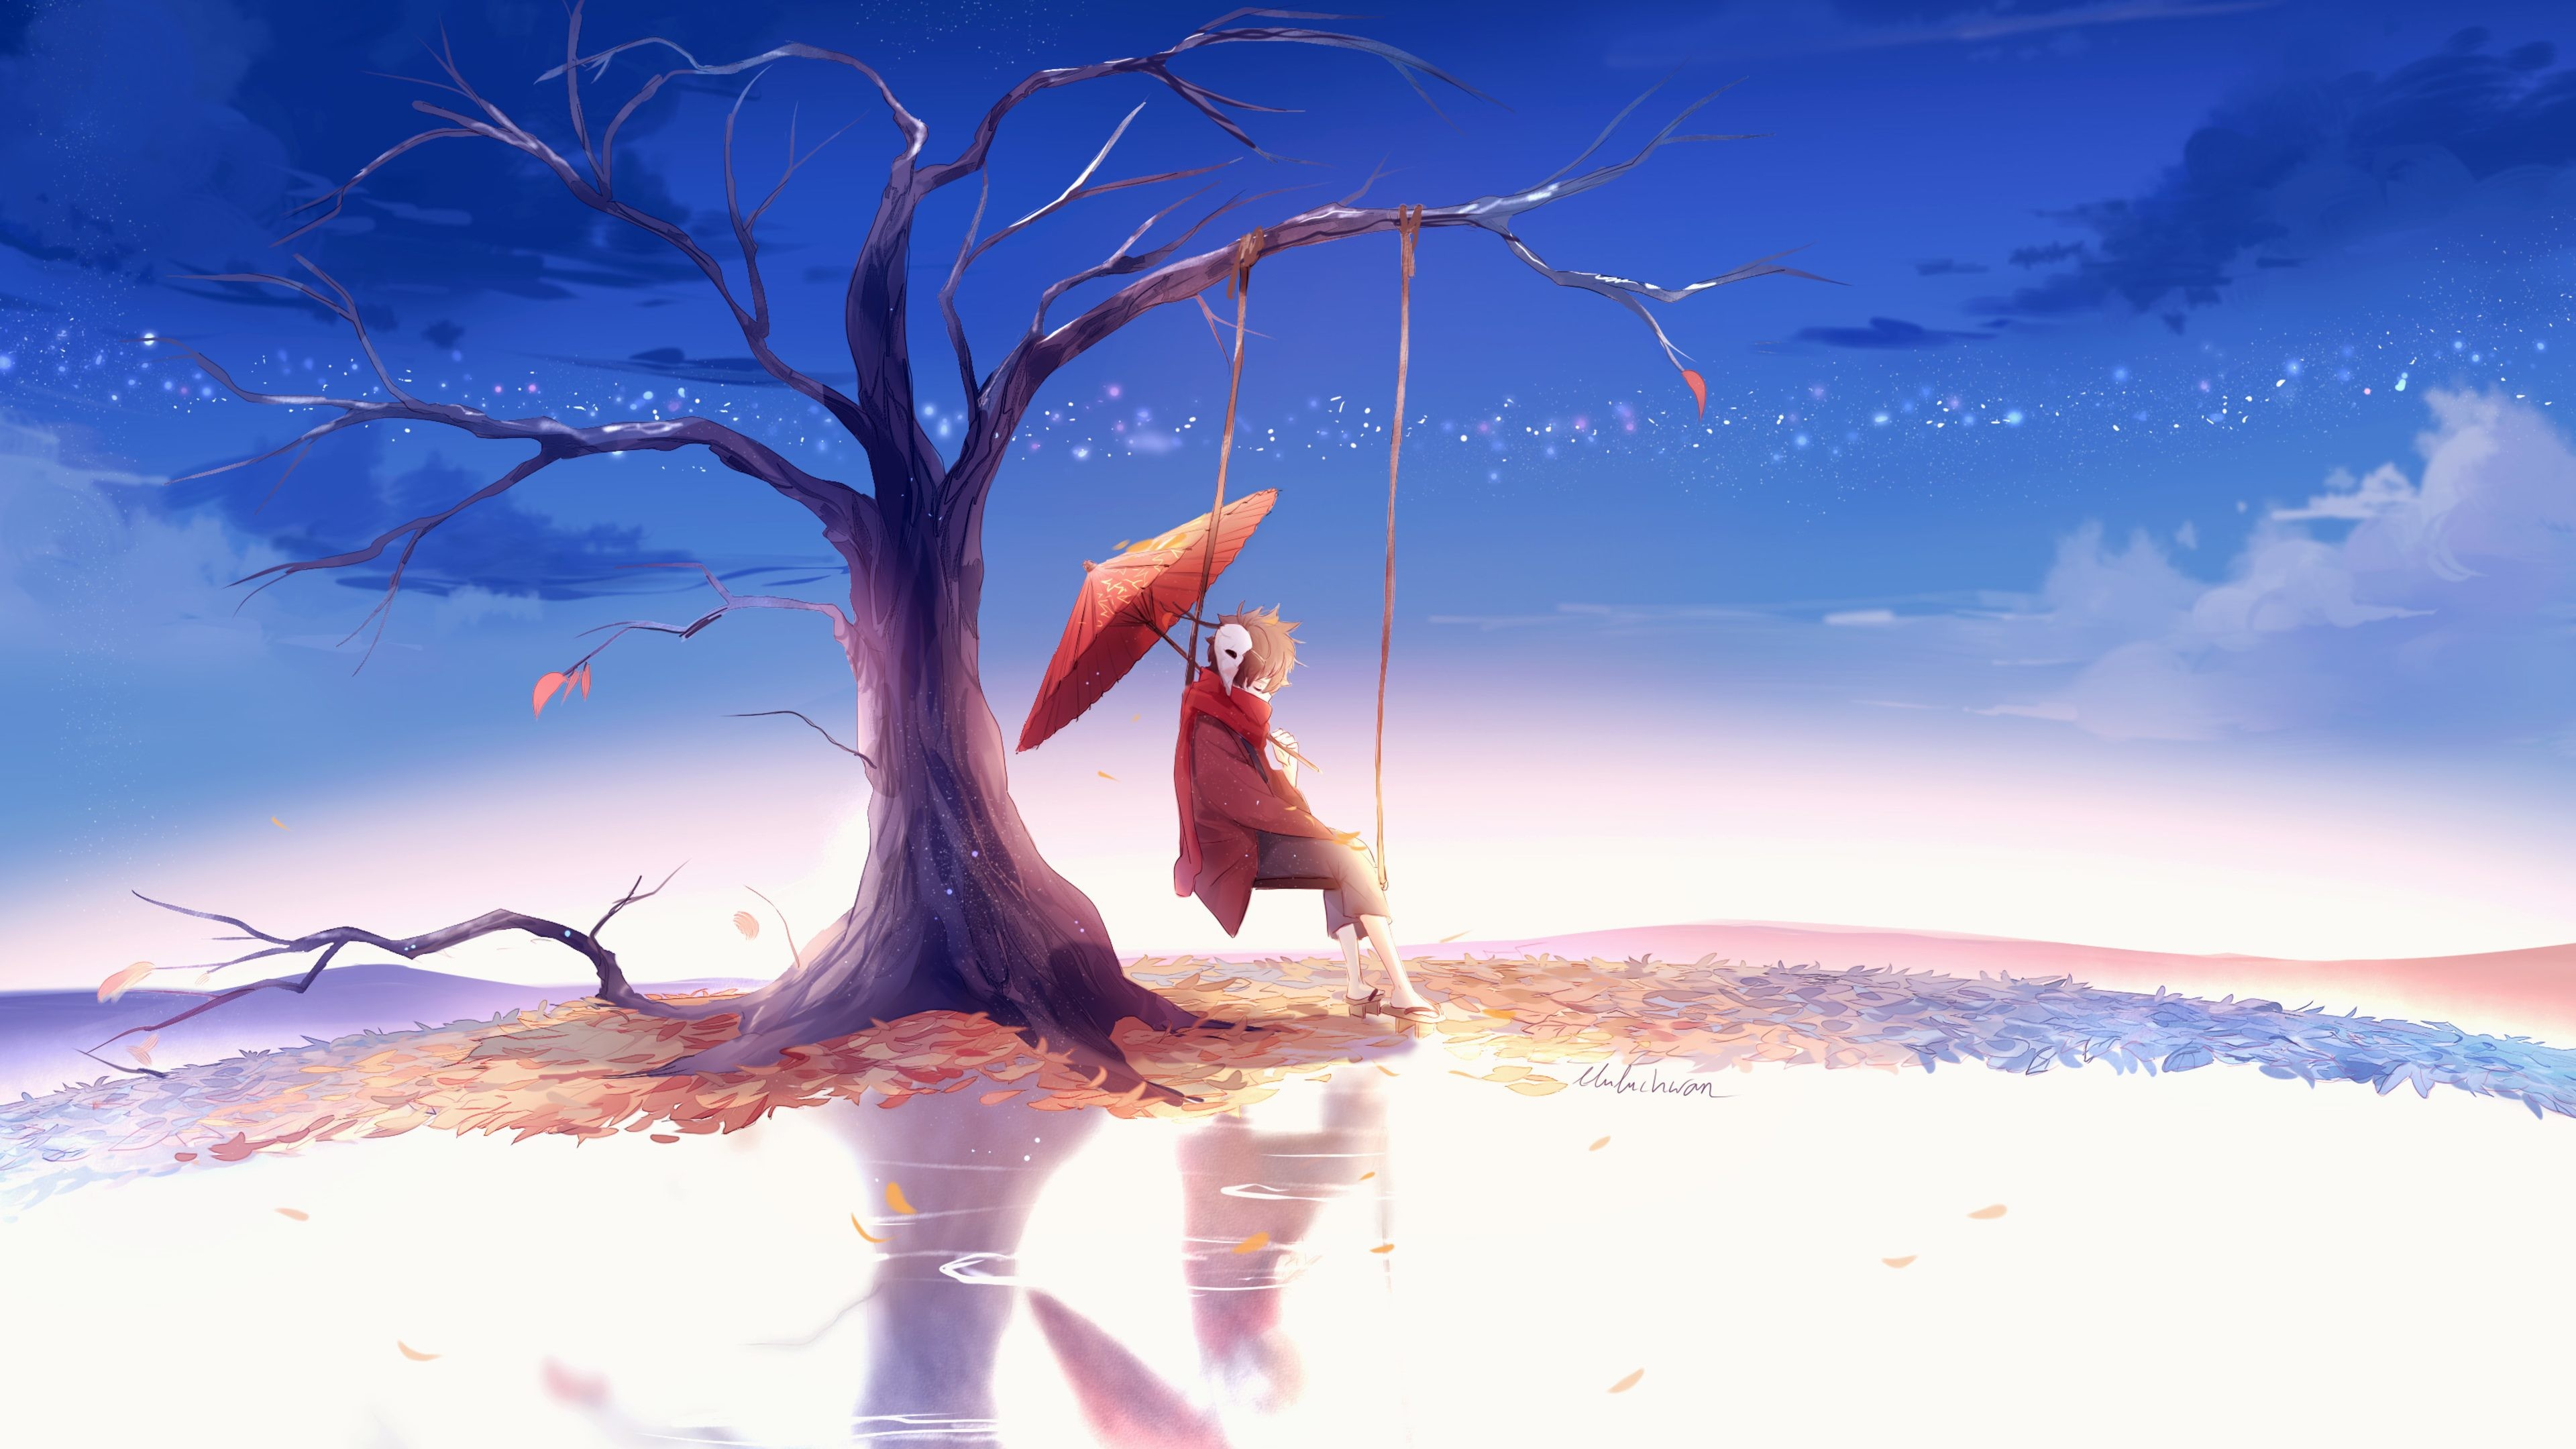 Sad Anime 763957 Hd Wallpaper Backgrounds Download